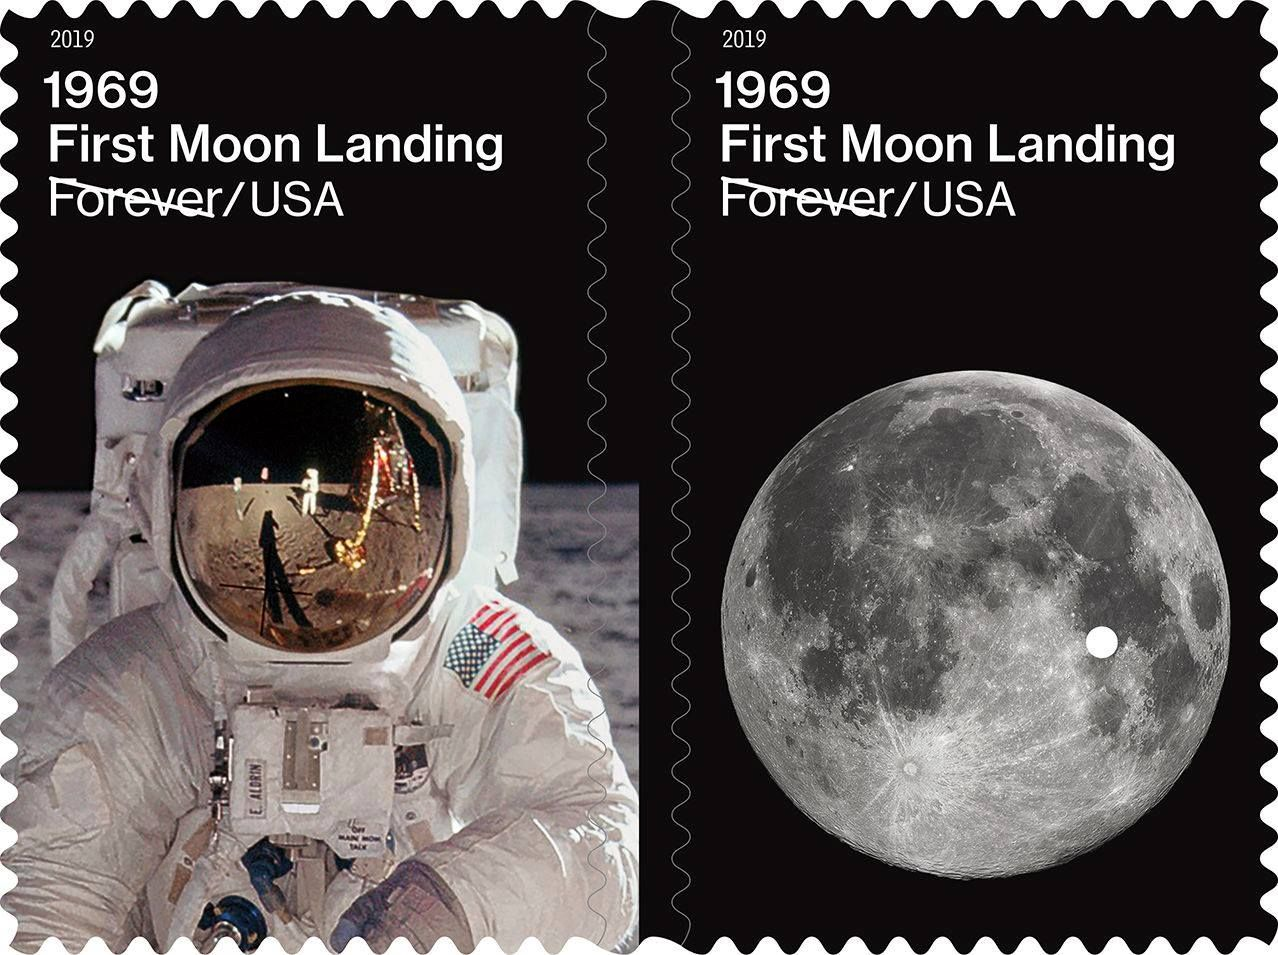 7fce36b4505103228dcd0716026f8cb9 - How Long To Get To The Moon Apollo 11